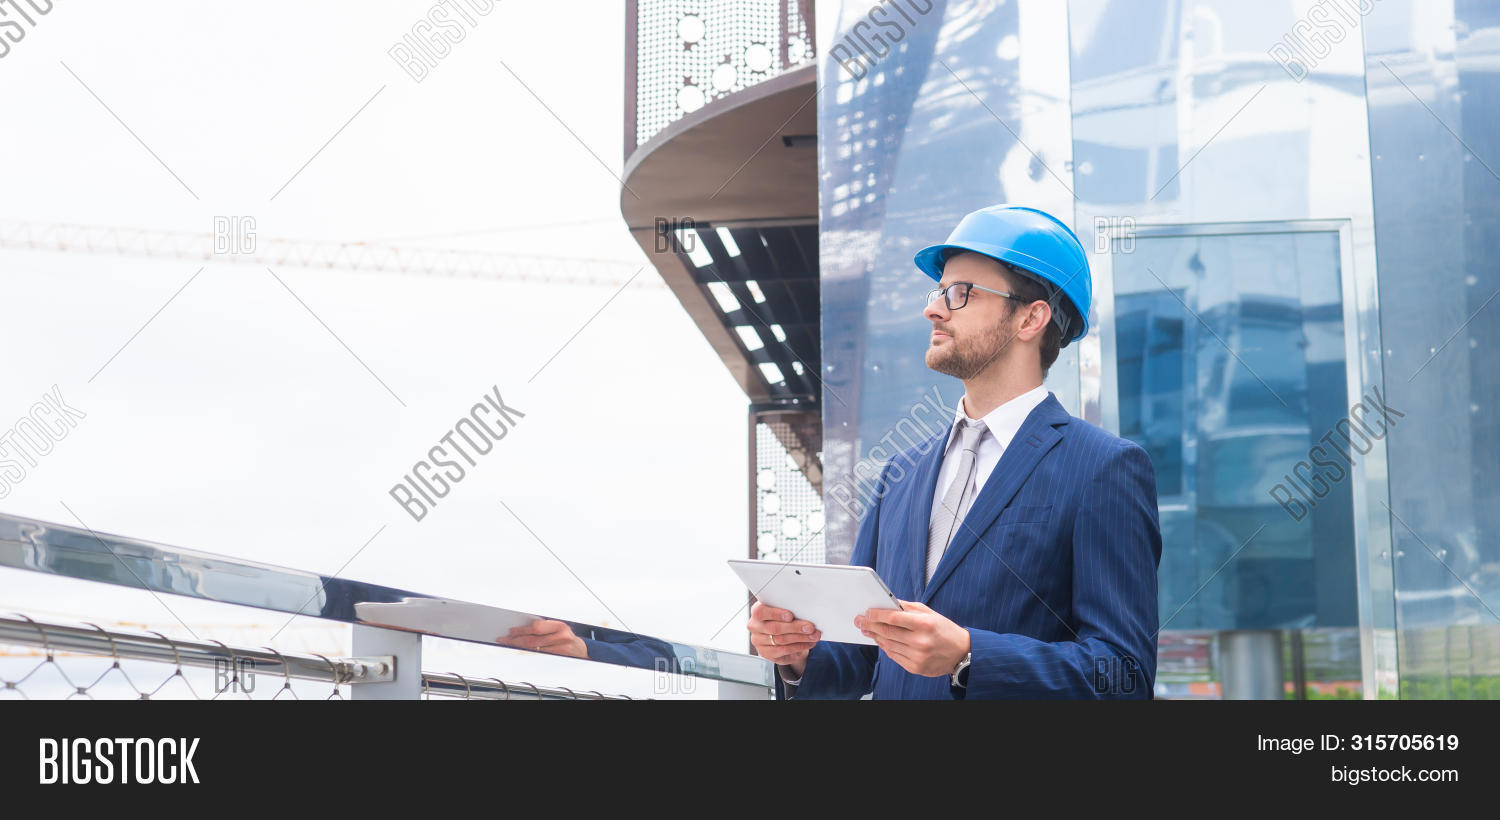 alone,architect,architects,balcony,bank,banking,boss,building,business,businessman,businessperson,career,city,collar,communication,company,concept,confident,construction,conversation,corporation,coworkers,crane,deal,development,financial,formalwear,future,helmet,inspecting,invest,job,mail,man,manager,market,modern,office,outdoor,outside,person,perspectives,professional,real estate,retailing,standing,talking,white,worker,young